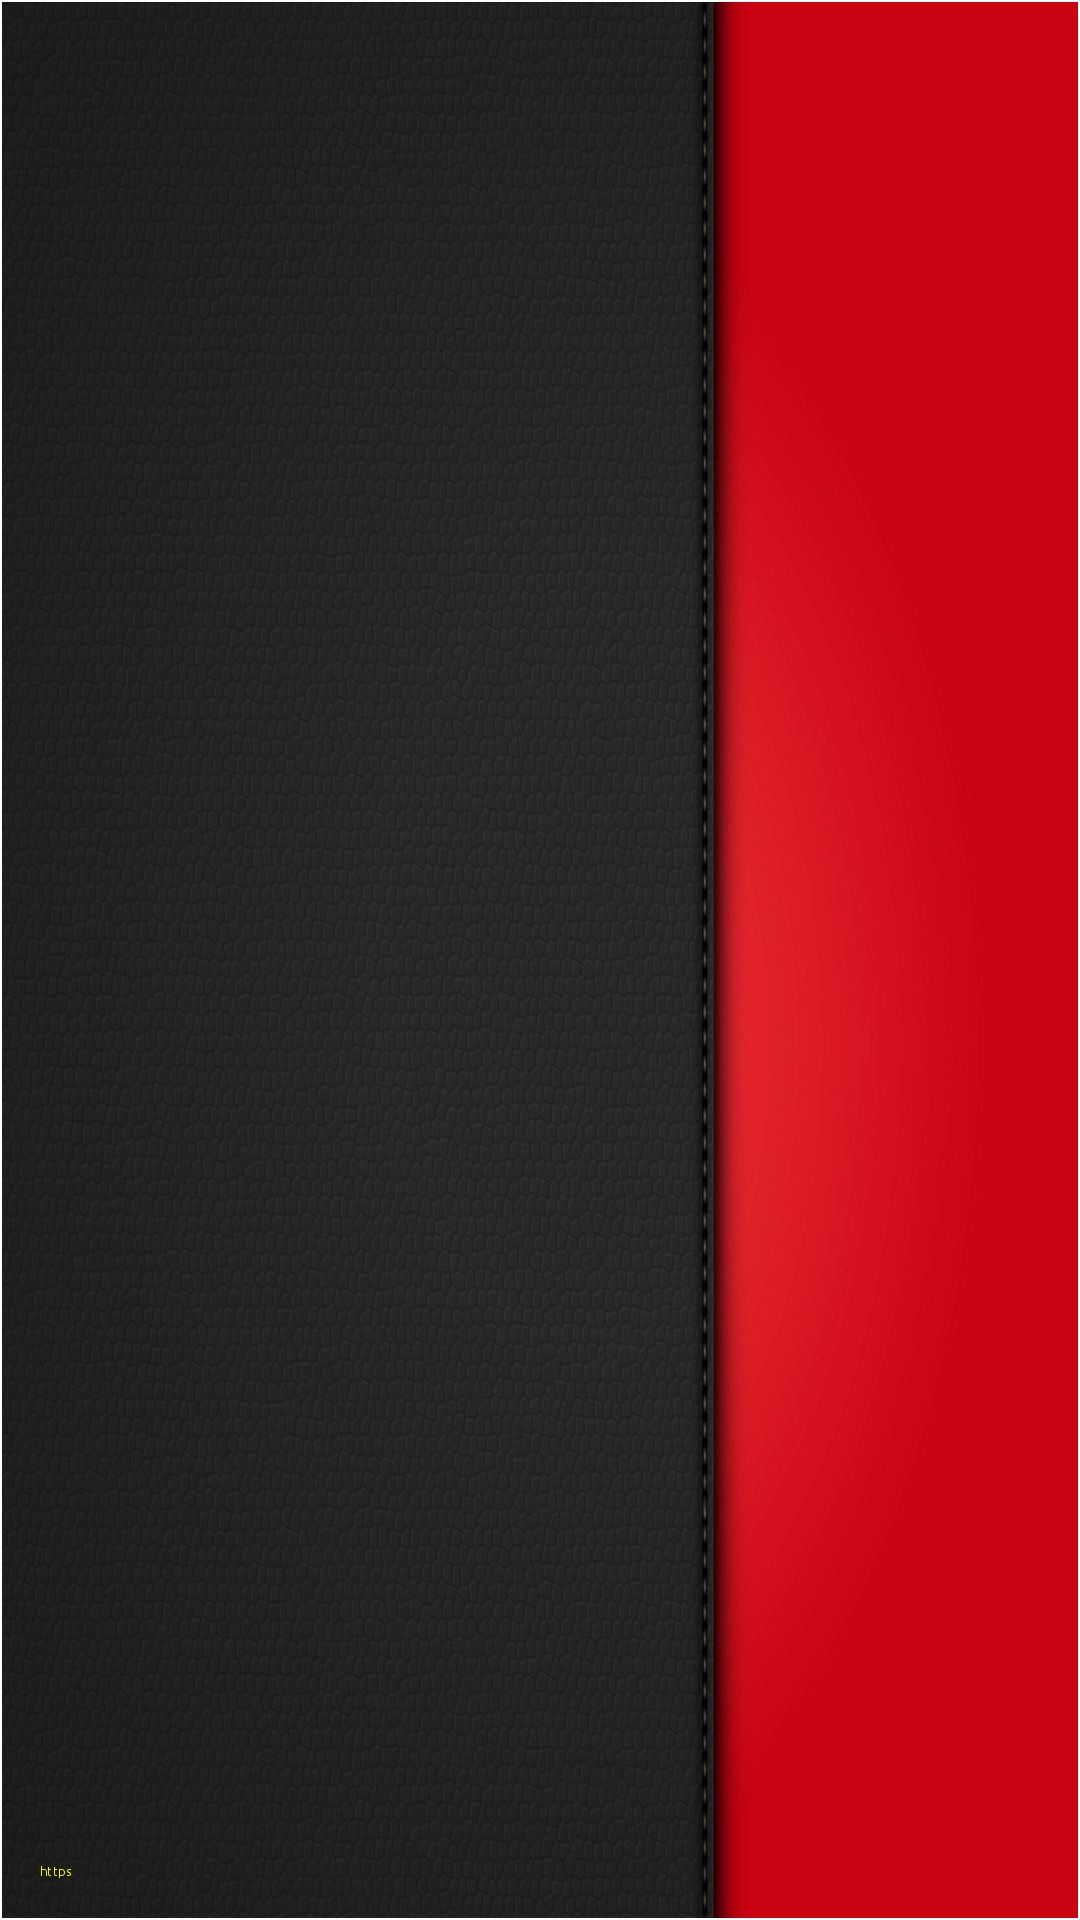 20 Black Red Iphone Wallpapers Wallpaperboat